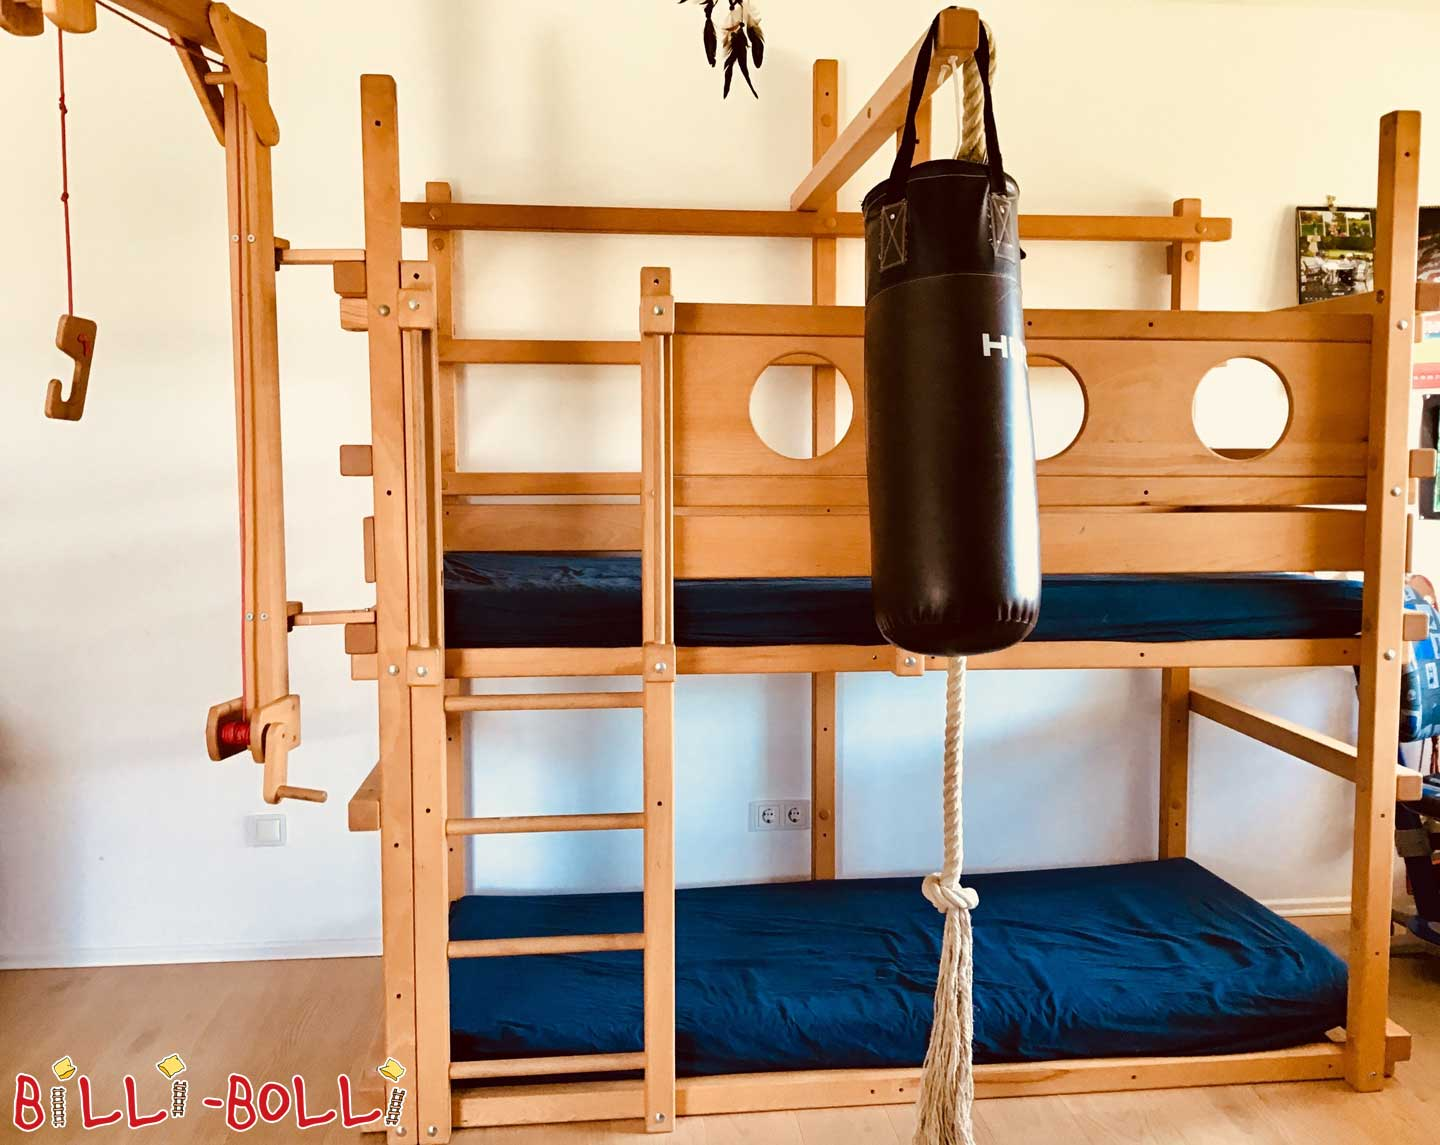 Well-kept bunk bed (second hand bunk bed)